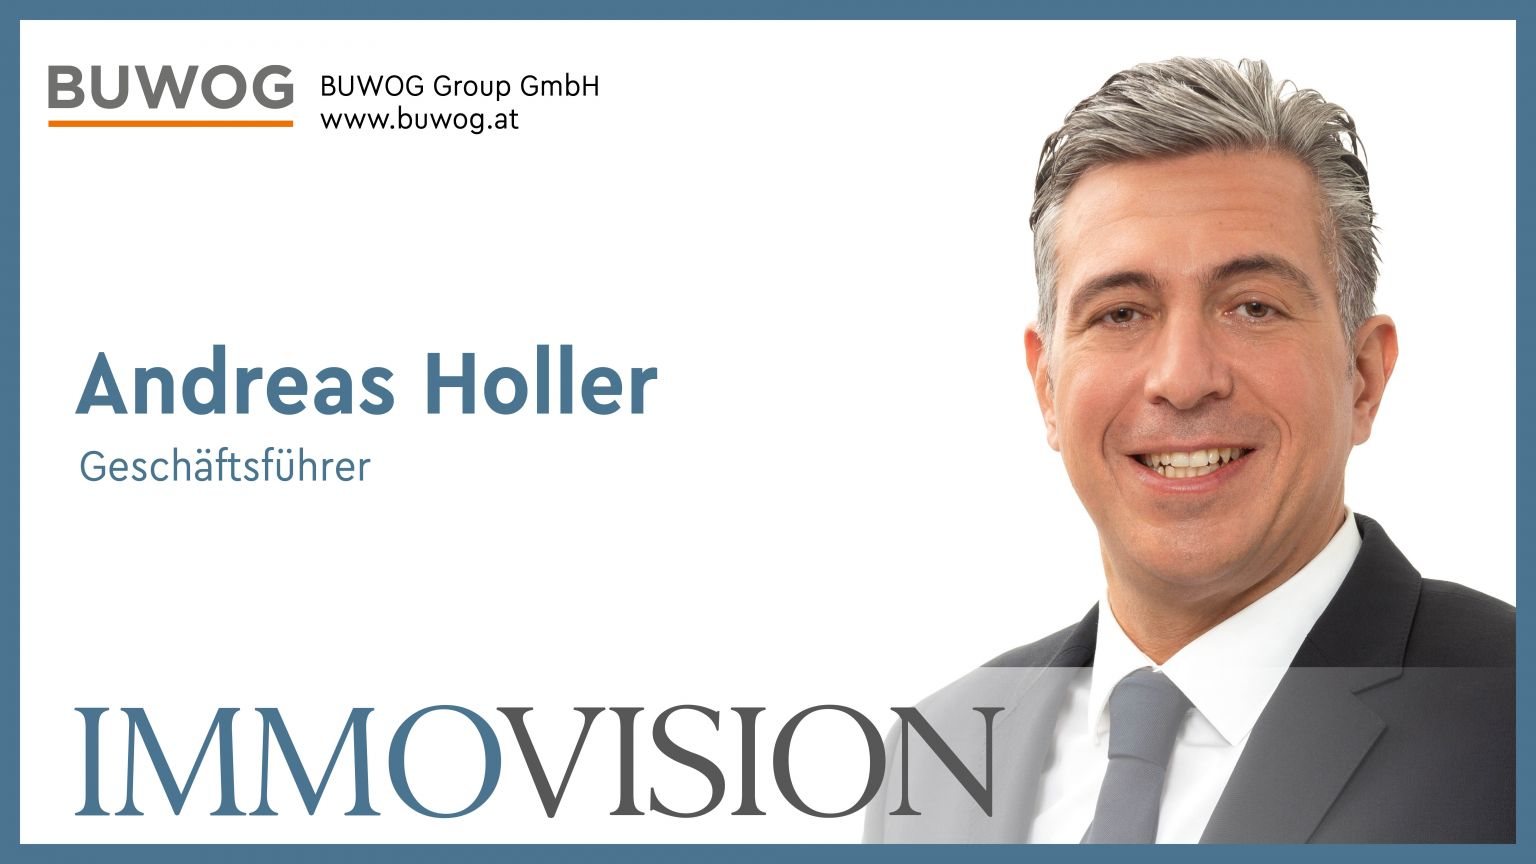 Andreas Holler